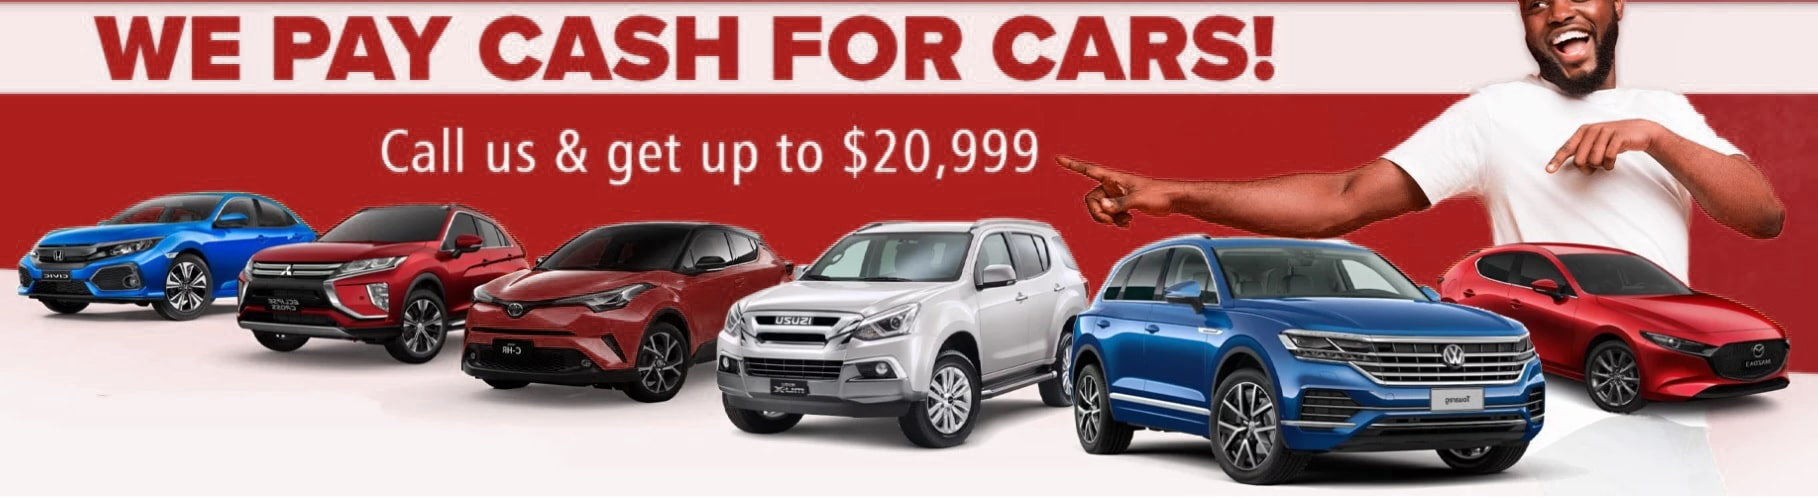 Cash for Cars Seaford